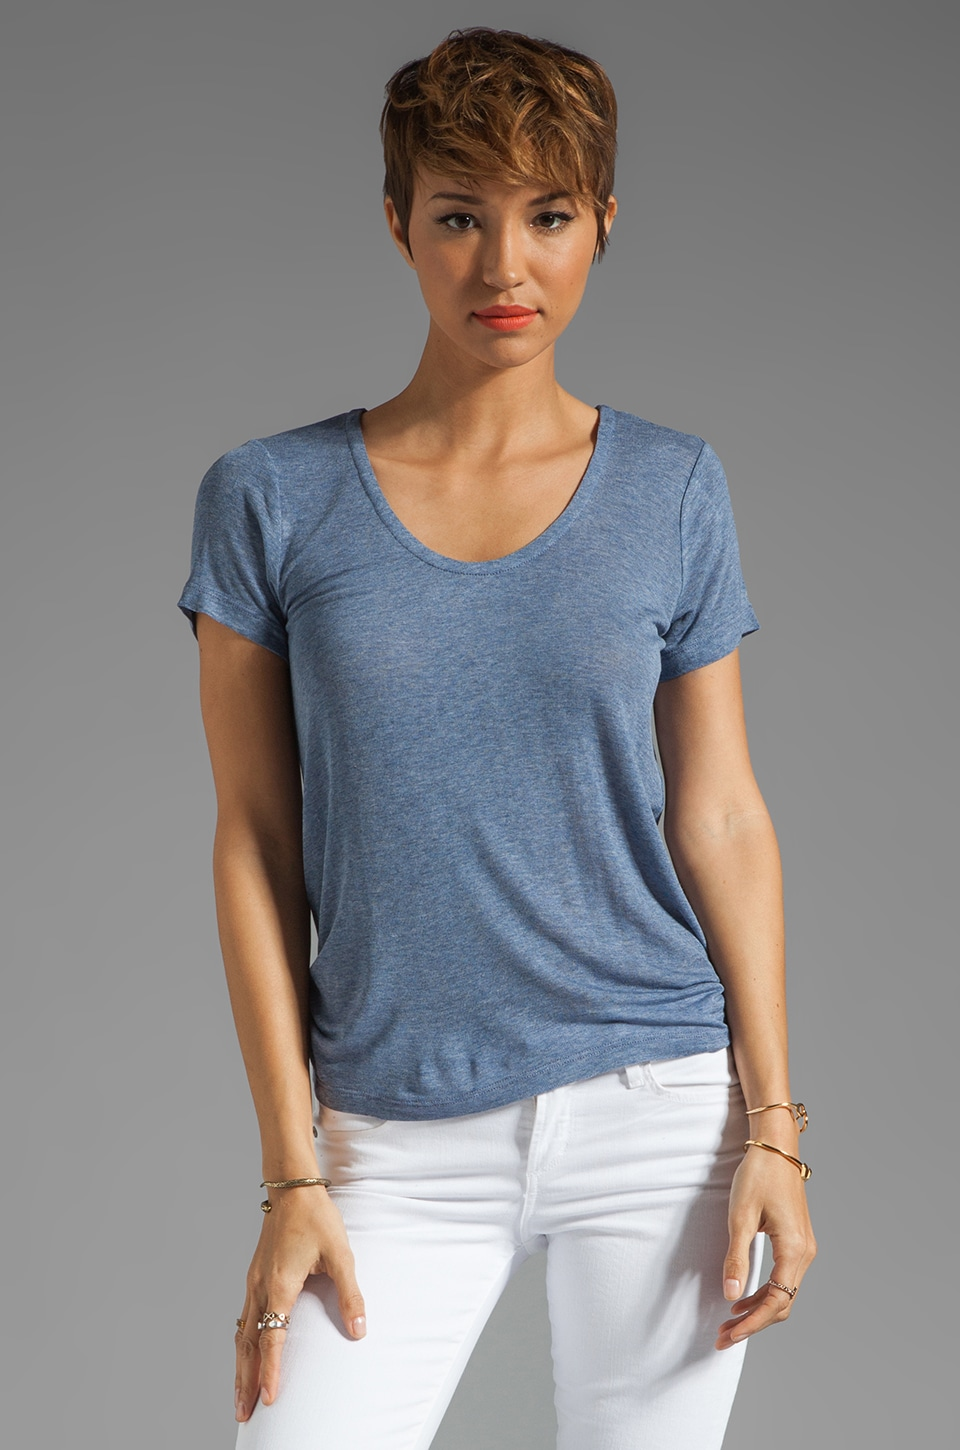 Splendid Drapey Lux Jersey in Chambray